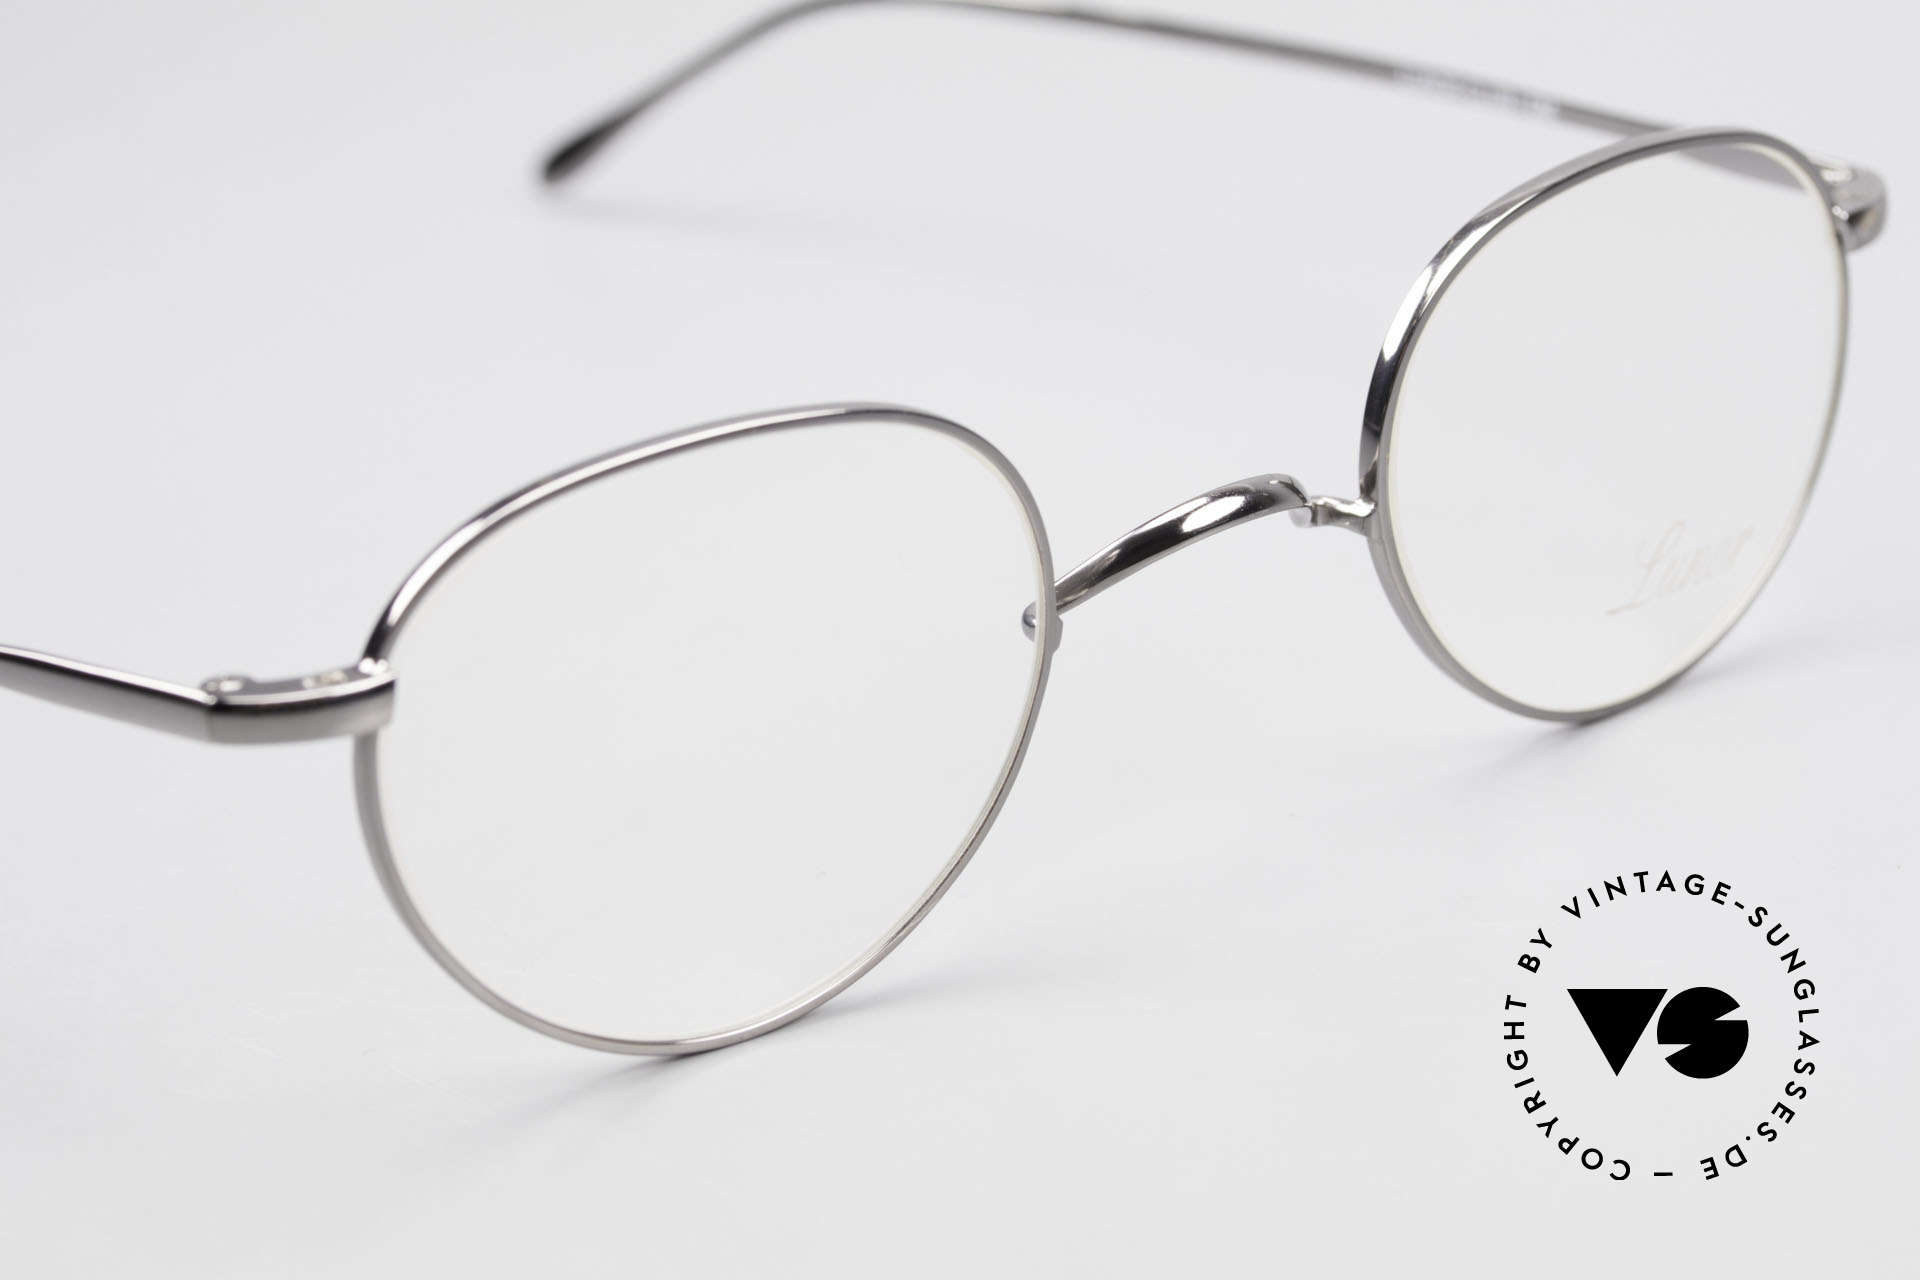 Lunor Club 501 GM Metal Glasses Anatomic Bridge, unworn RARITY (for all lovers of quality) from app. 2009, Made for Men and Women